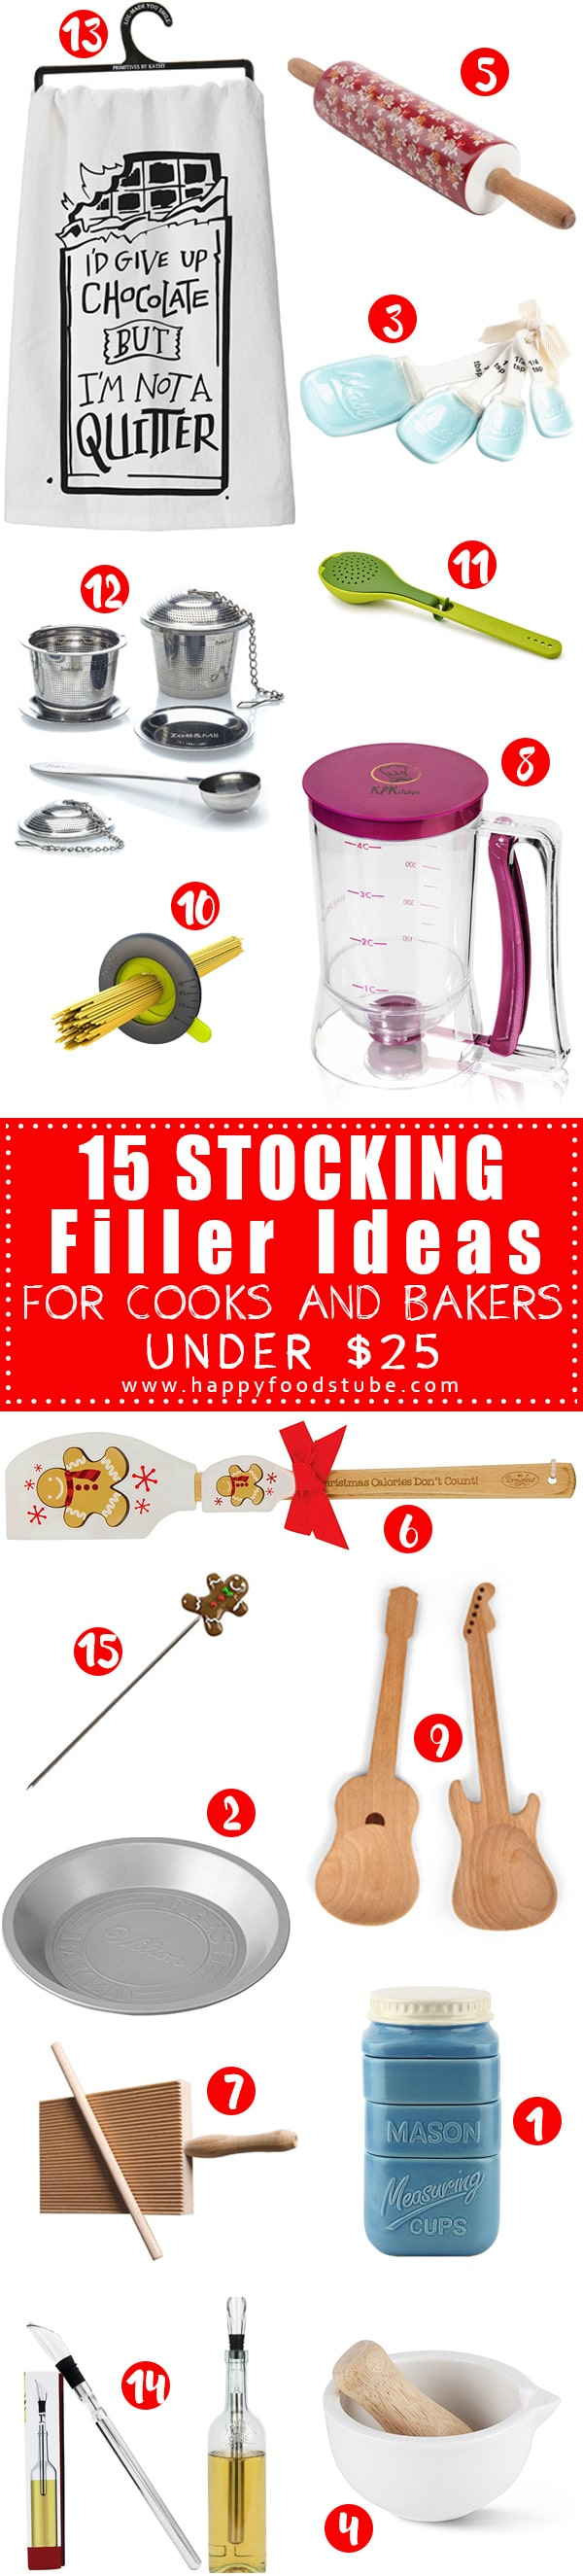 The Holiday season is fast approaching so I made this list of 15 stocking fillers gift ideas! If you have friends or family members who love to cook or bake then this list is for you! | happyfoodstube.com